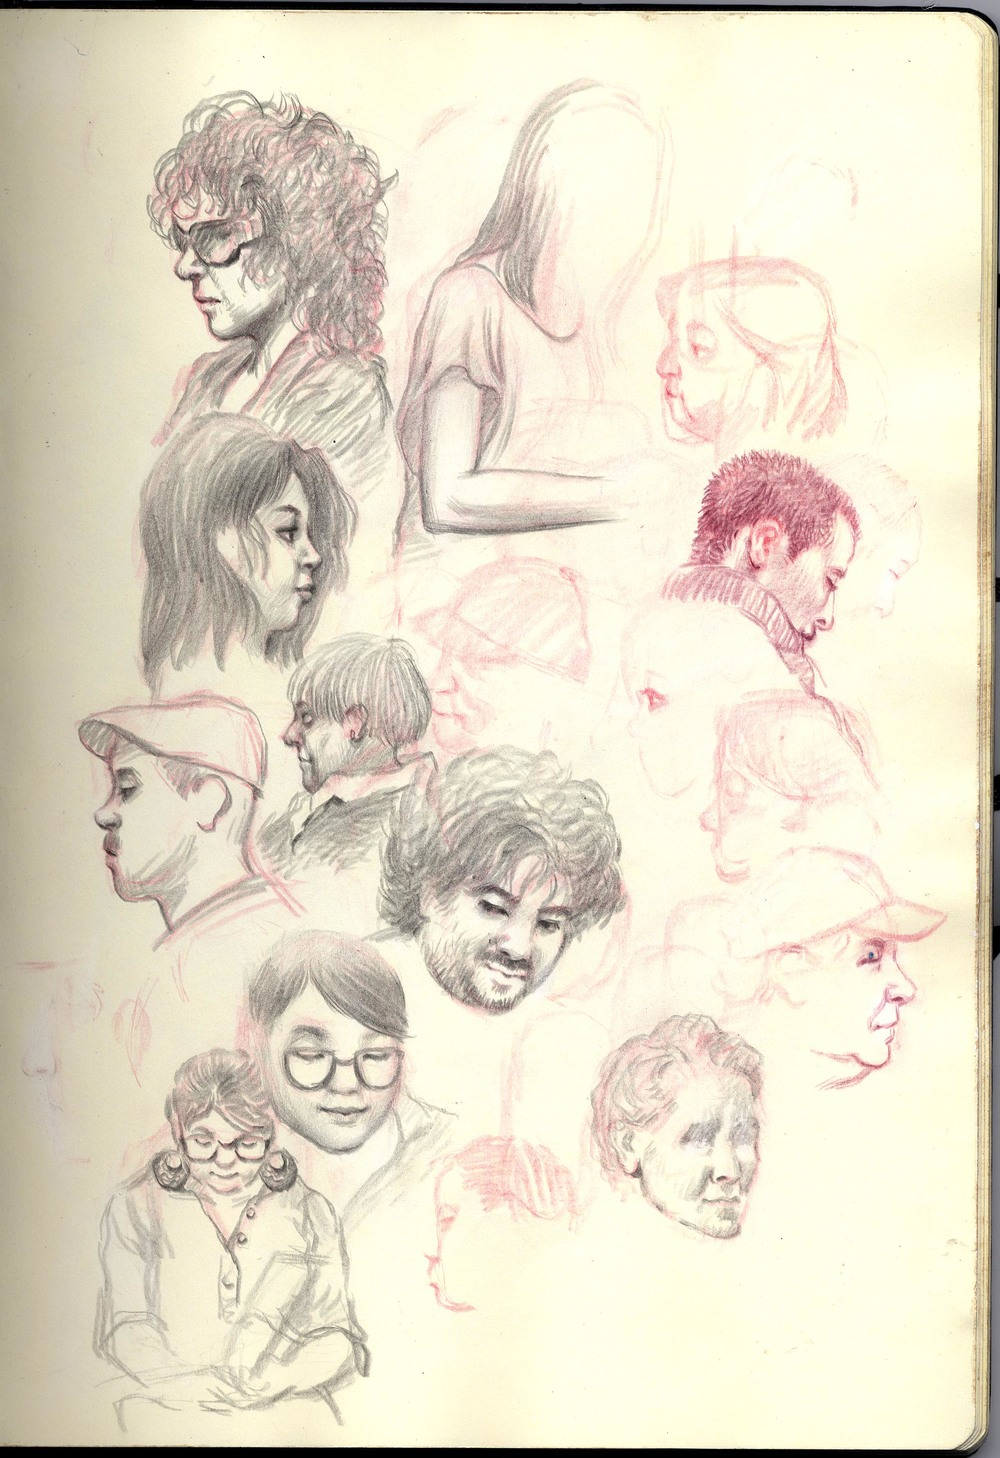 Subway-Sketches-09122011-peter-chan-art-drawing-sketches.jpg